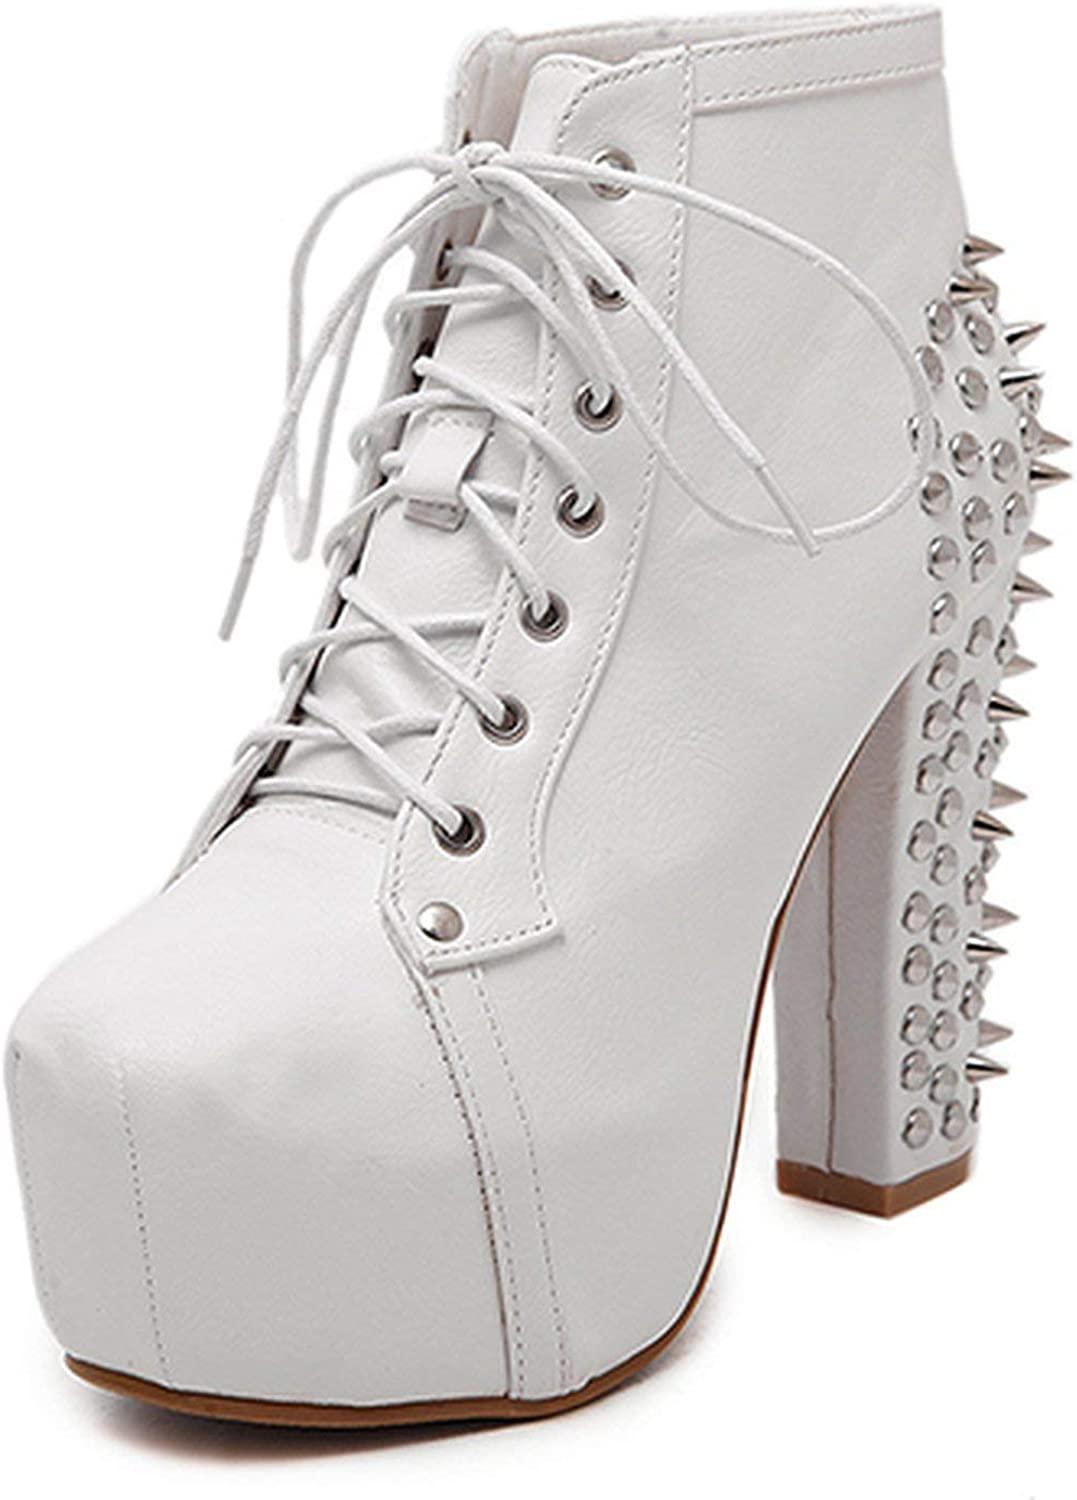 Summer-lavender Fashion Rivet Ankle Boots High Heels Women Spring Autumn Lacing Sexy shoes Motorcycle Boots